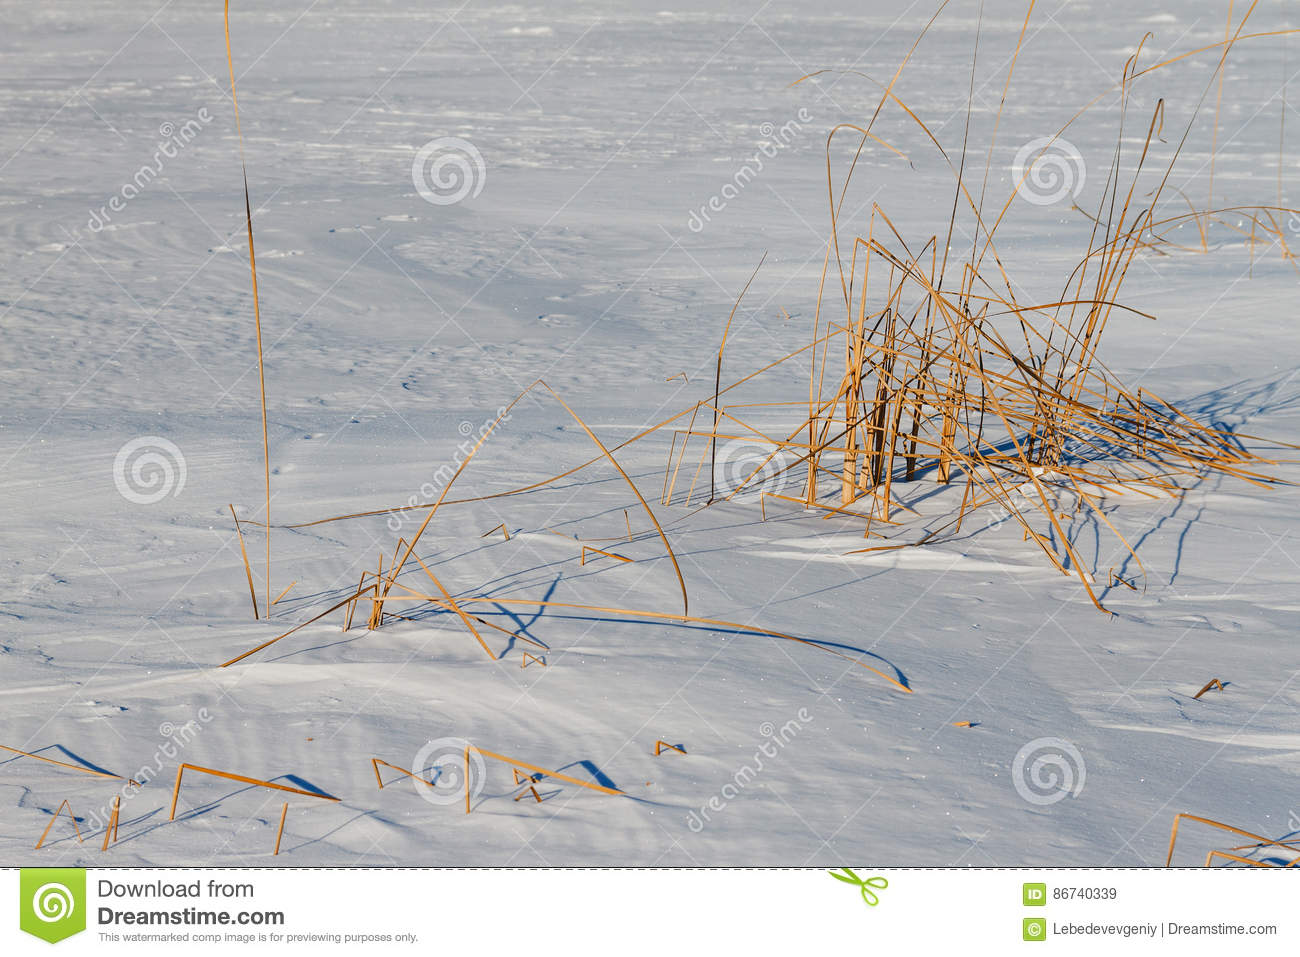 Download The Frozen River With A Dry Cane On The Island Stock Image - Image of environment, bulrush: 86740339